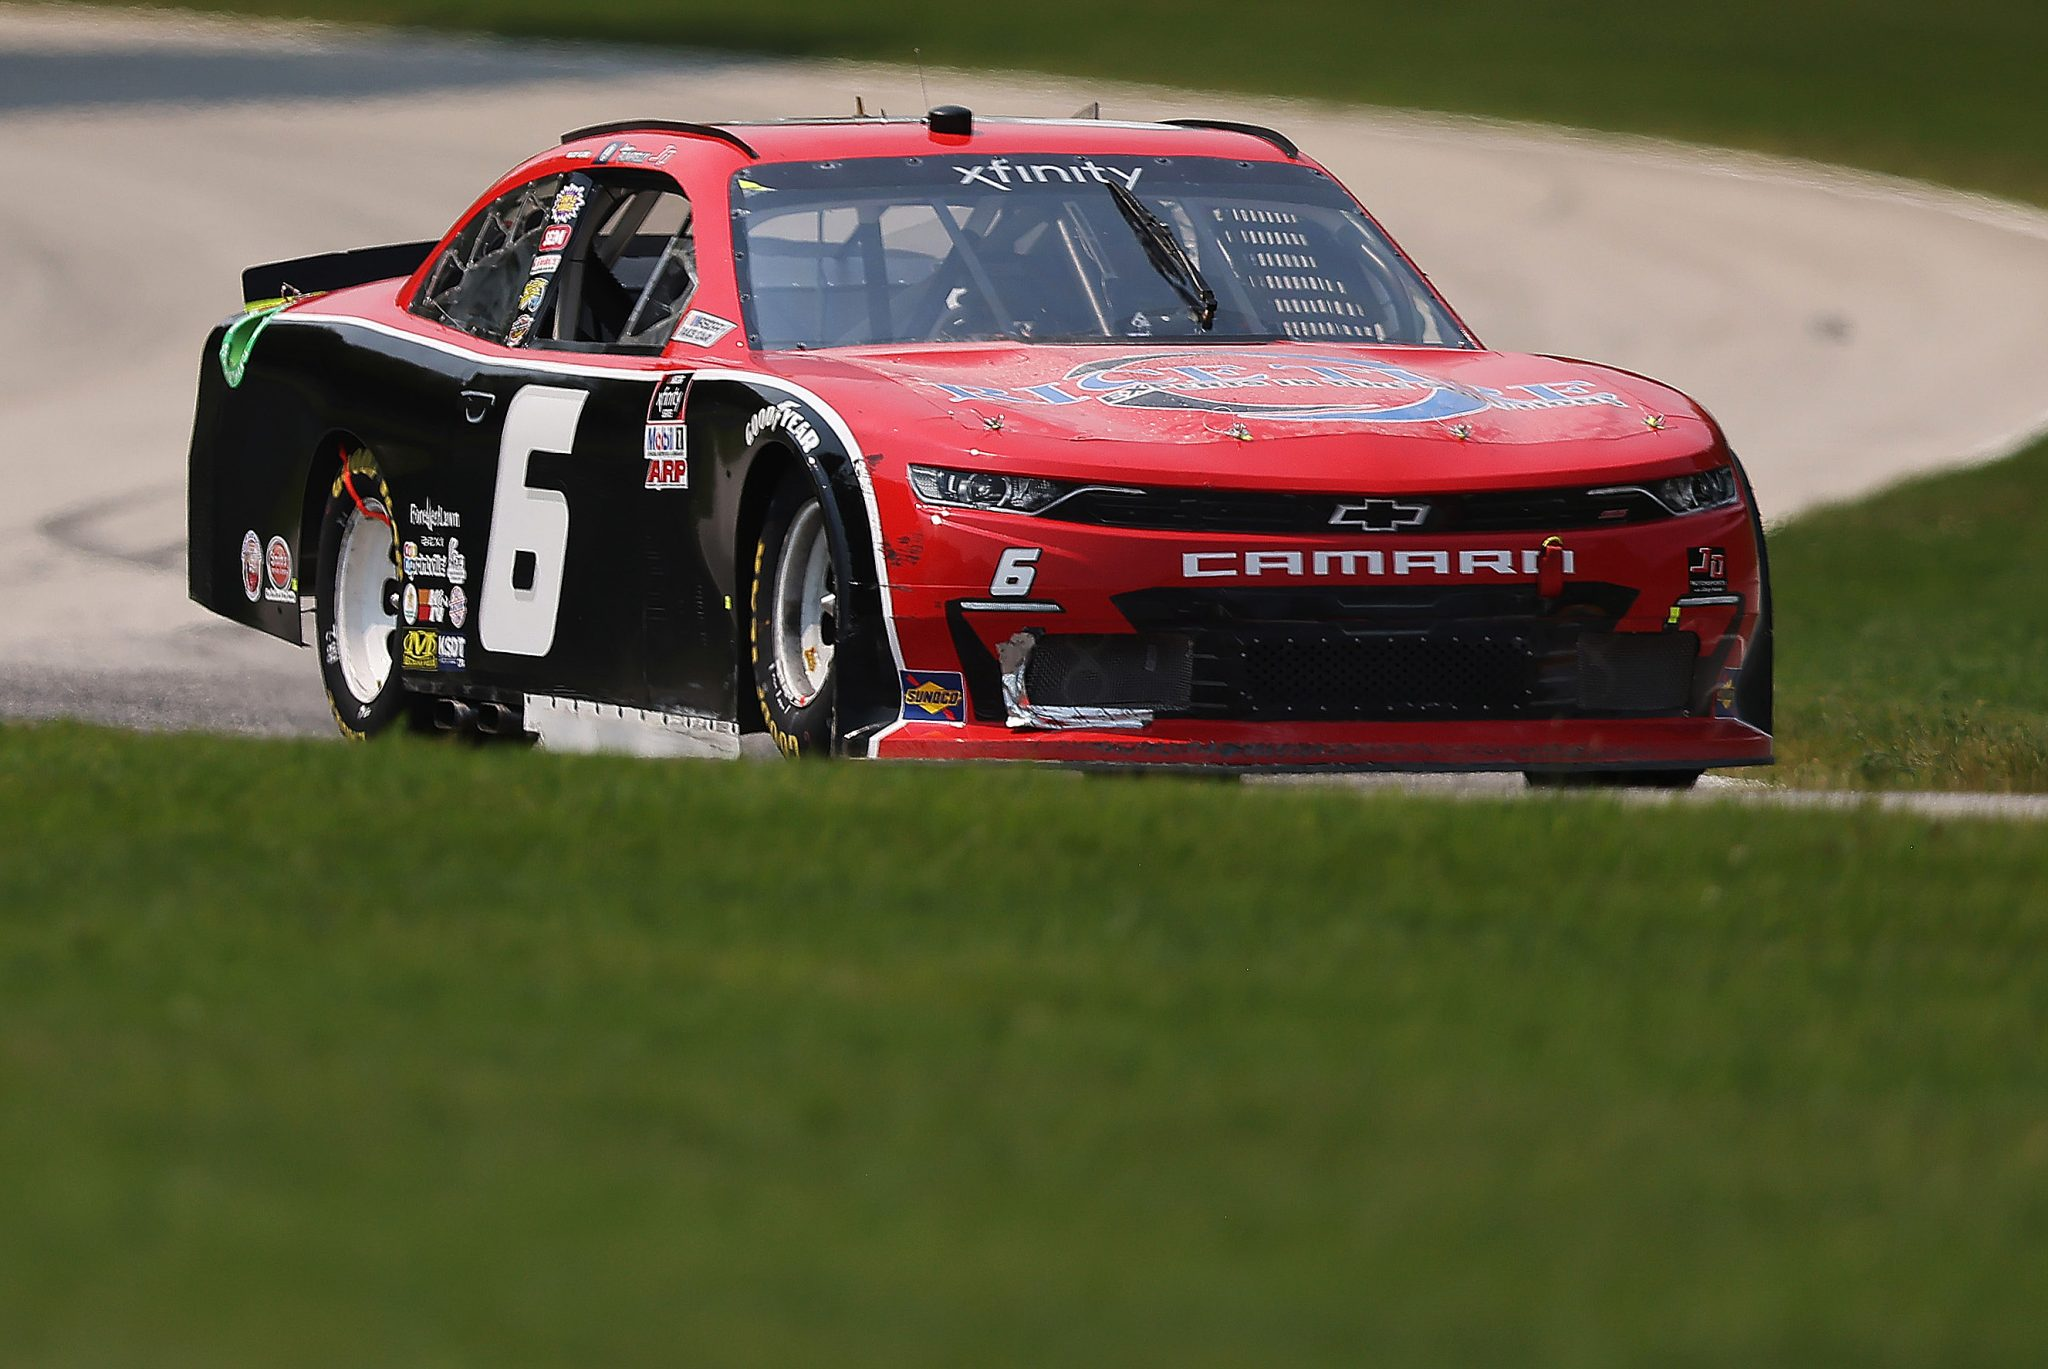 ELKHART LAKE, WISCONSIN - JULY 03:, driver of the #6 TeamJDMotorsports.com Chevrolet, drives during the NASCAR Xfinity Series Henry 180 at Road America on July 03, 2021 in Elkhart Lake, Wisconsin. (Photo by James Gilbert/Getty Images) | Getty Images